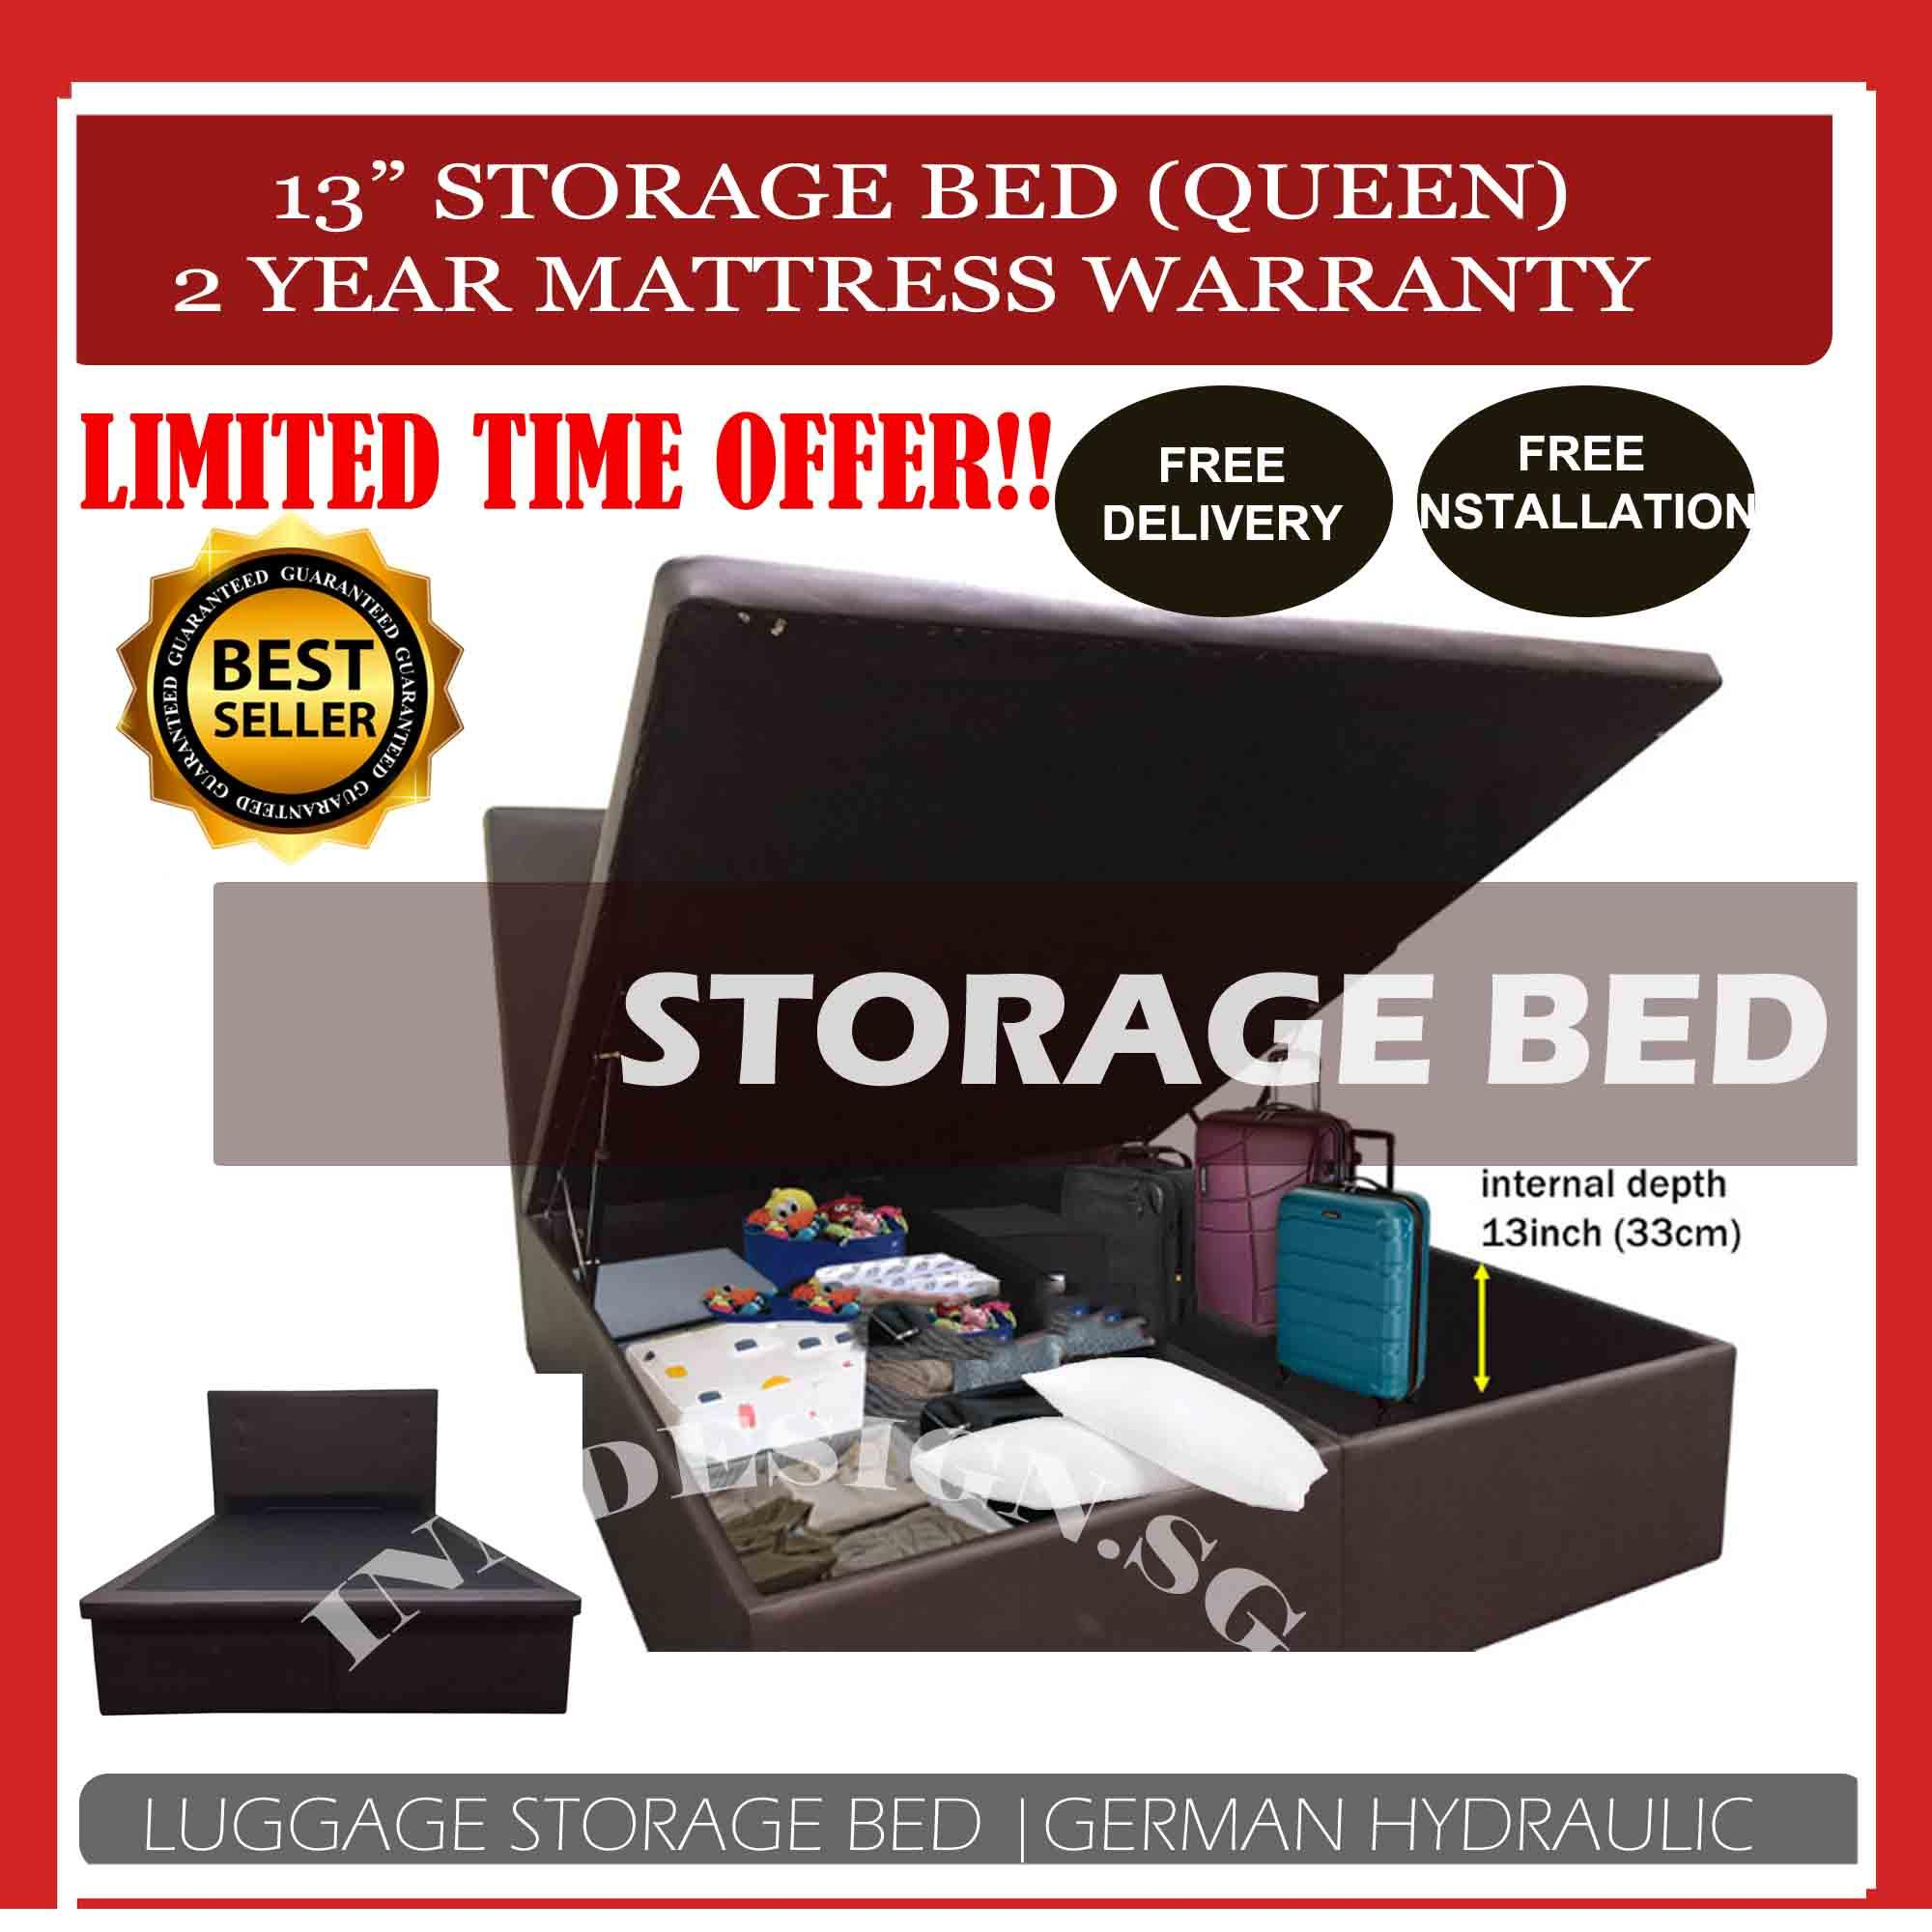 [2Year Warranty] Queen Storage Bed With 13inches Internal Depth [Can put Big Luggage] (Free Delivery and Installation)